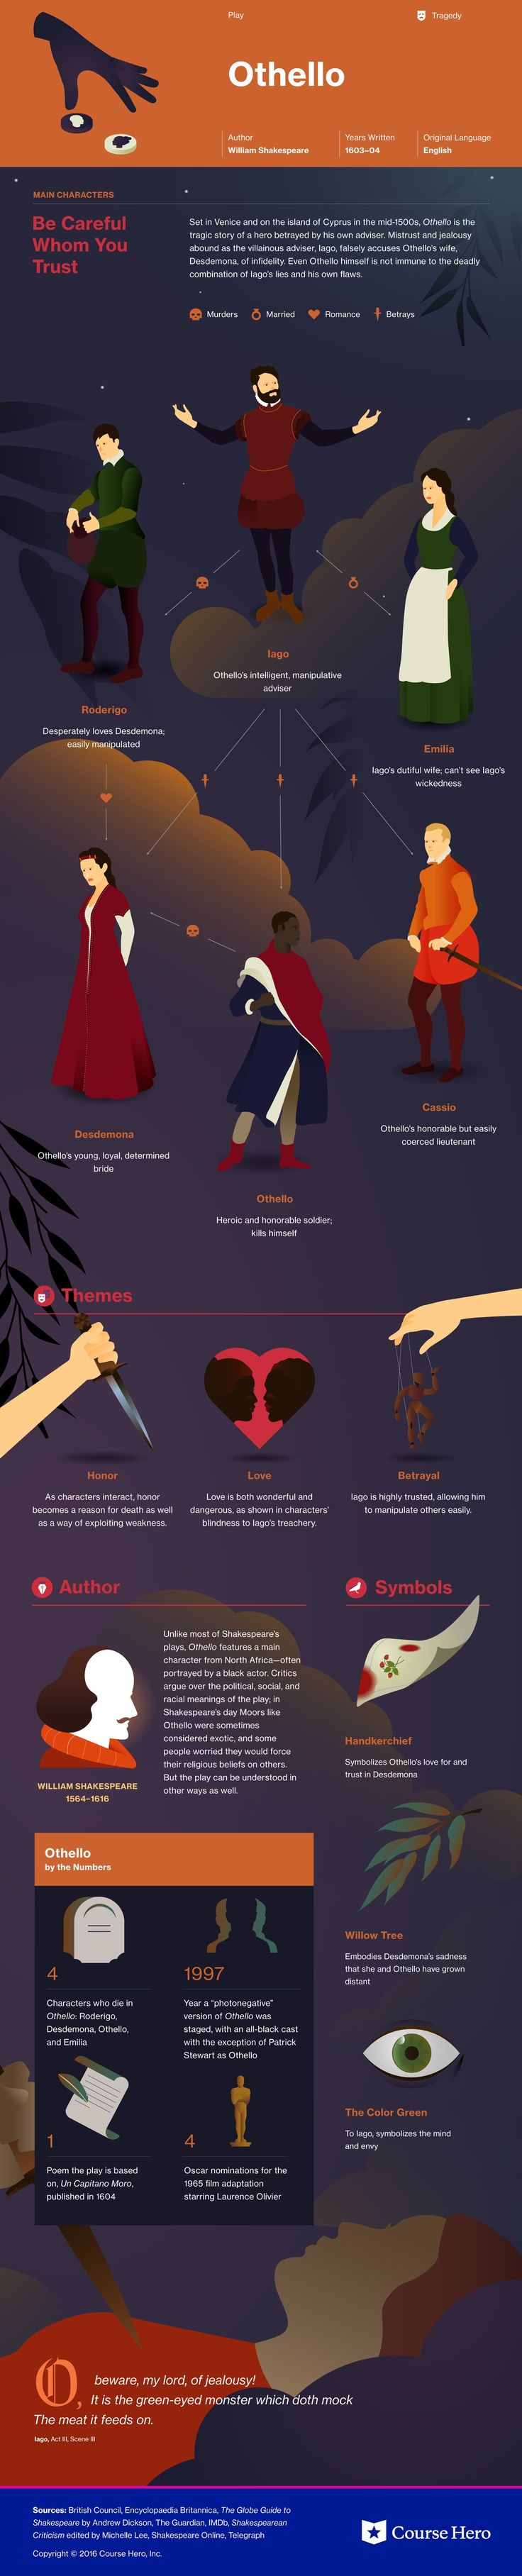 Othello infographic